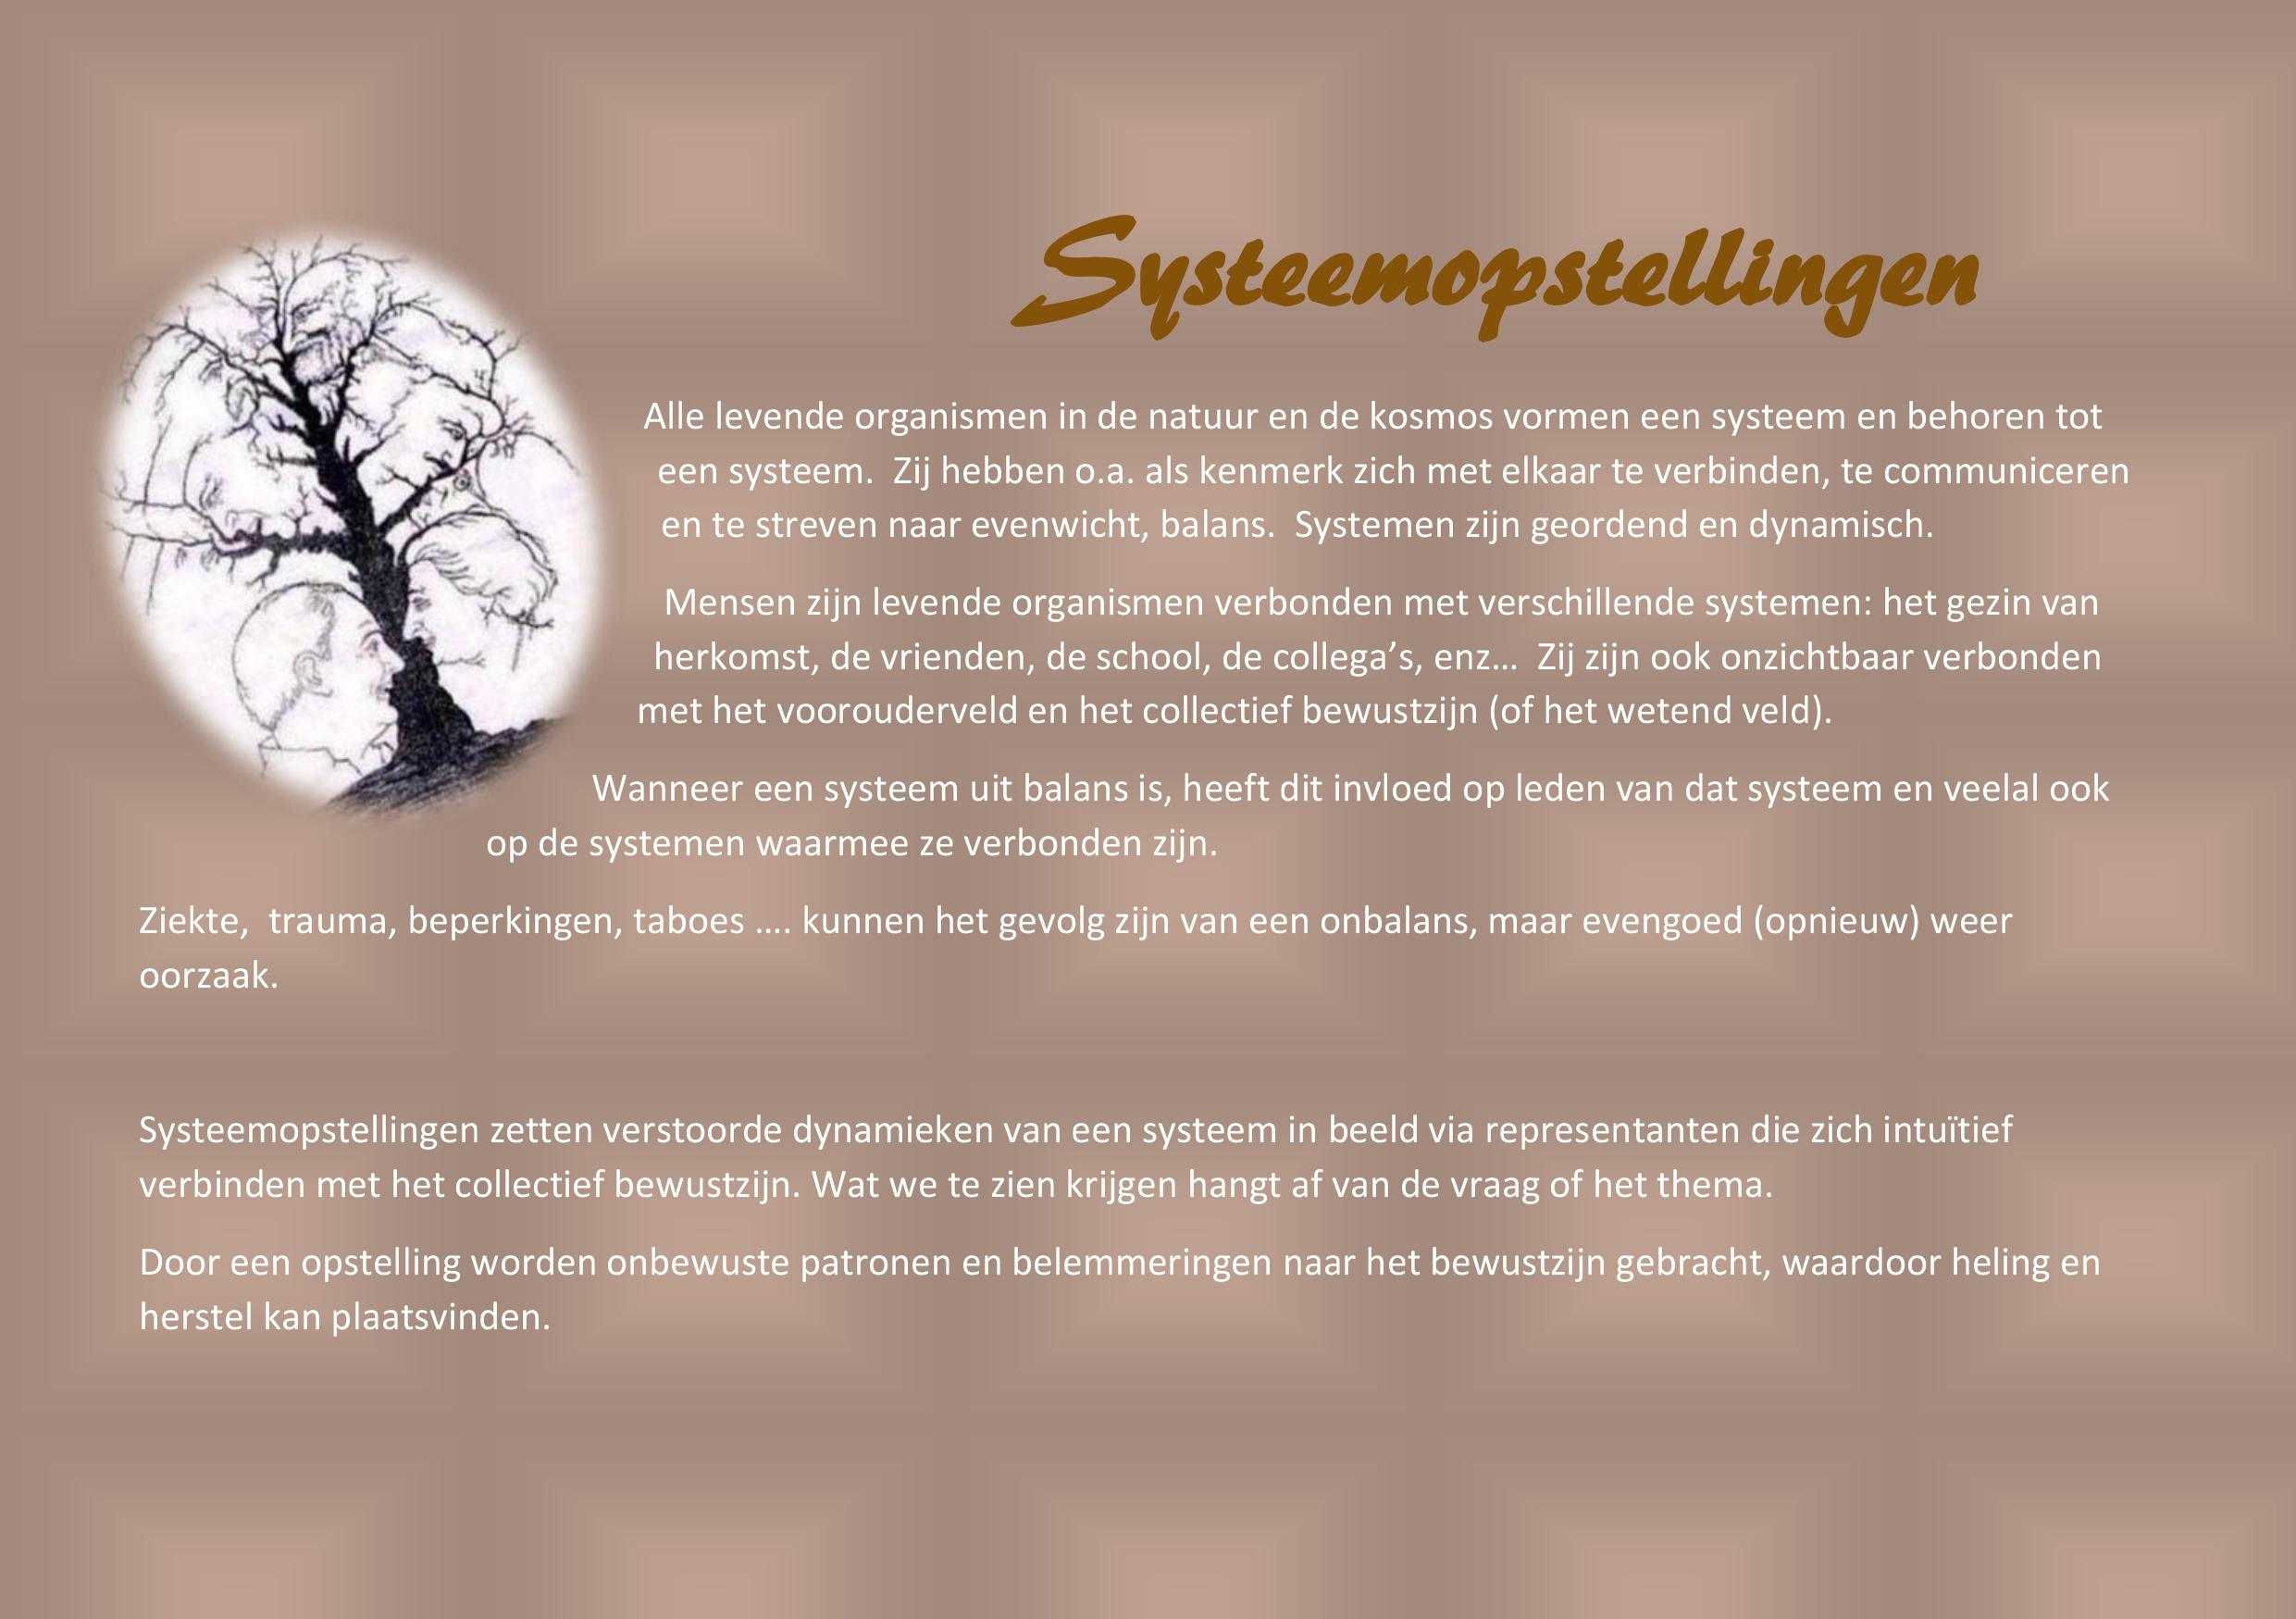 Info over Systeemopstellingen